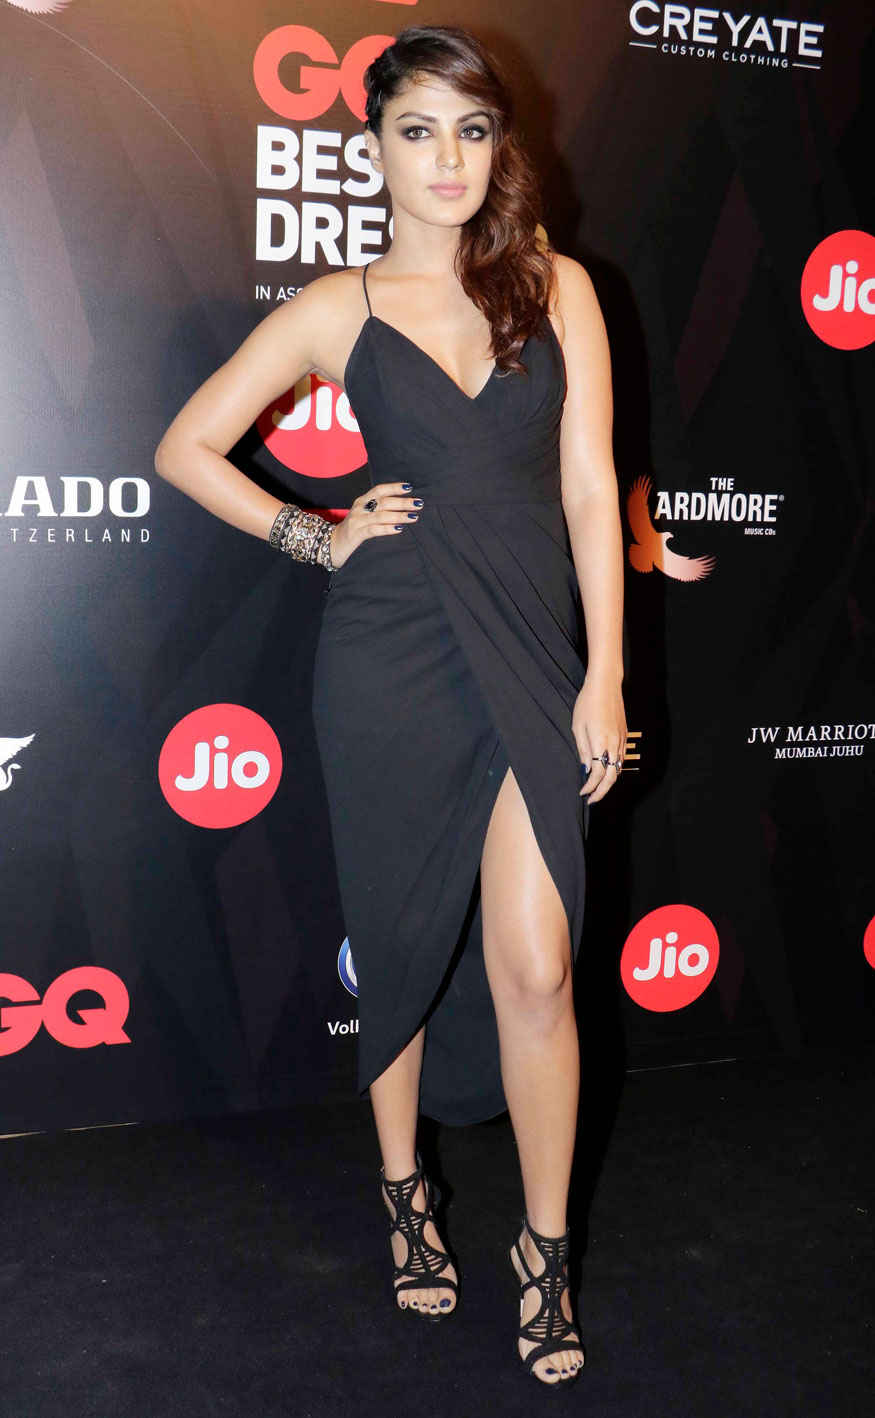 Rhea Chakraborty Attends The GQ Best Dressed Awards Event Gallery